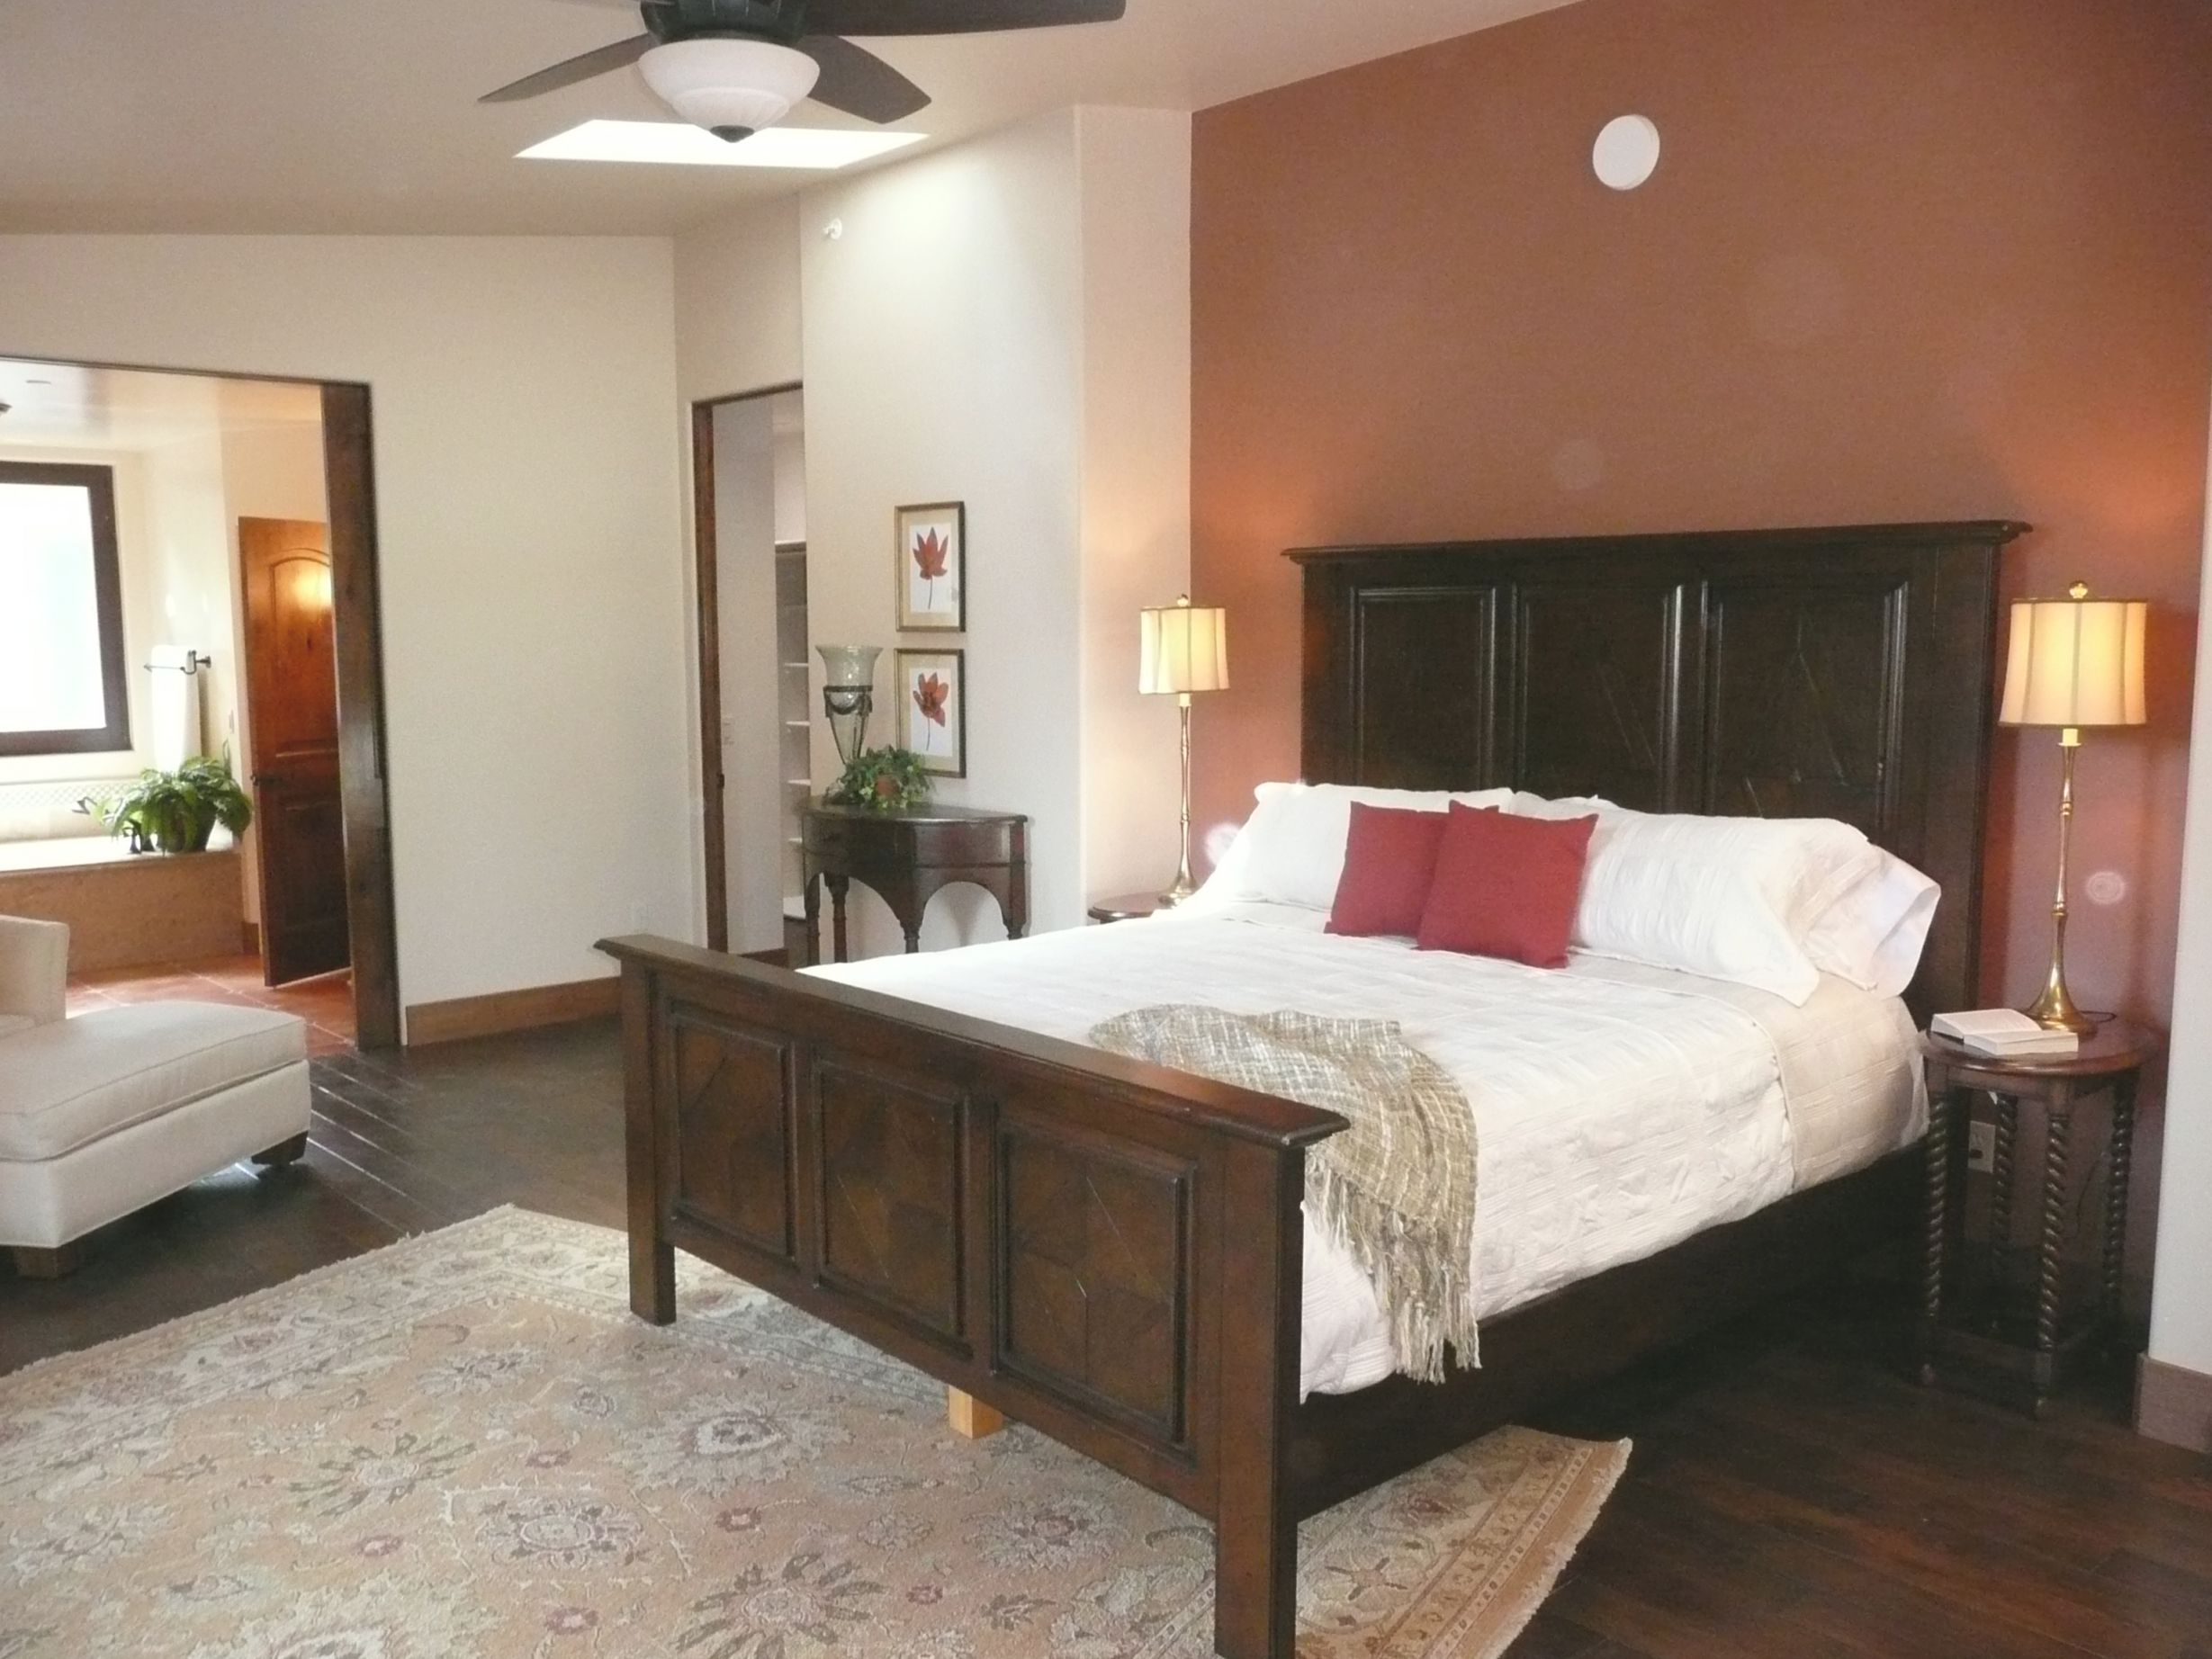 Menlo Passive Feng Shui Bedroom Layout Feng Shui Bathroom Regarding Awesome Feng Shui Bedroom Decorating Ideas Awesome Decors